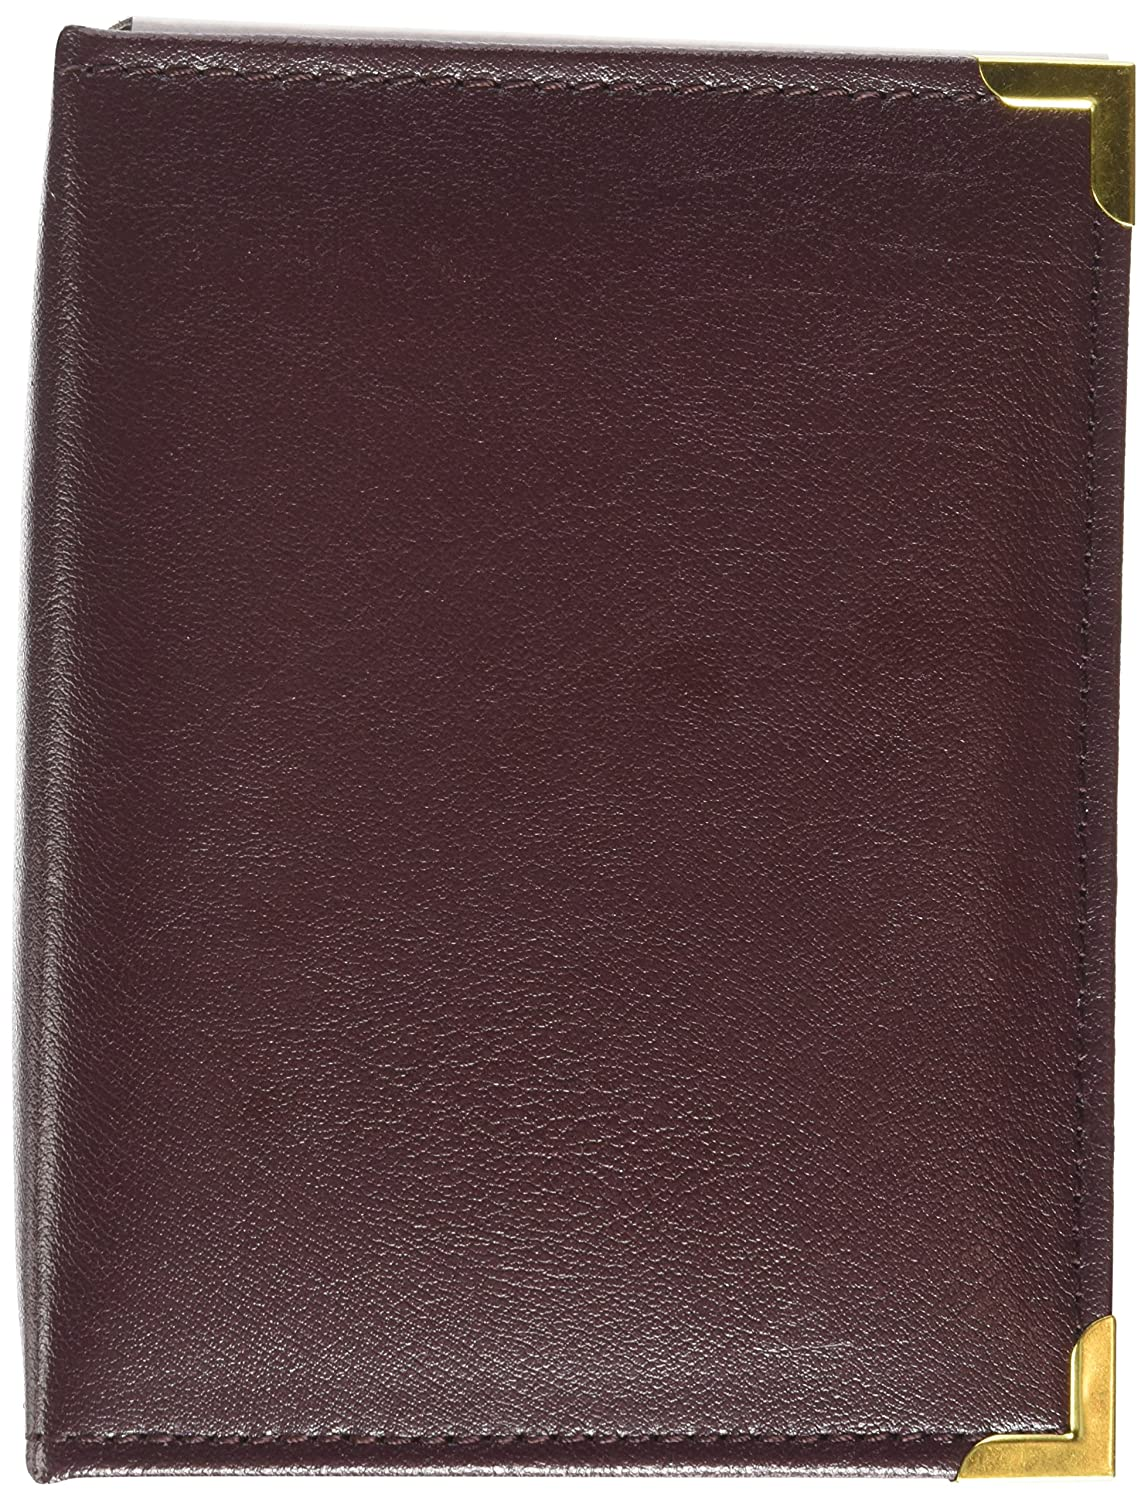 Pioneer 100 Pocket Burgundy Sewn Leatherette Cover with Brass Corner Accents Photo Album, 4 by 6-Inch Pioneer Photo Albums E4-100/BG